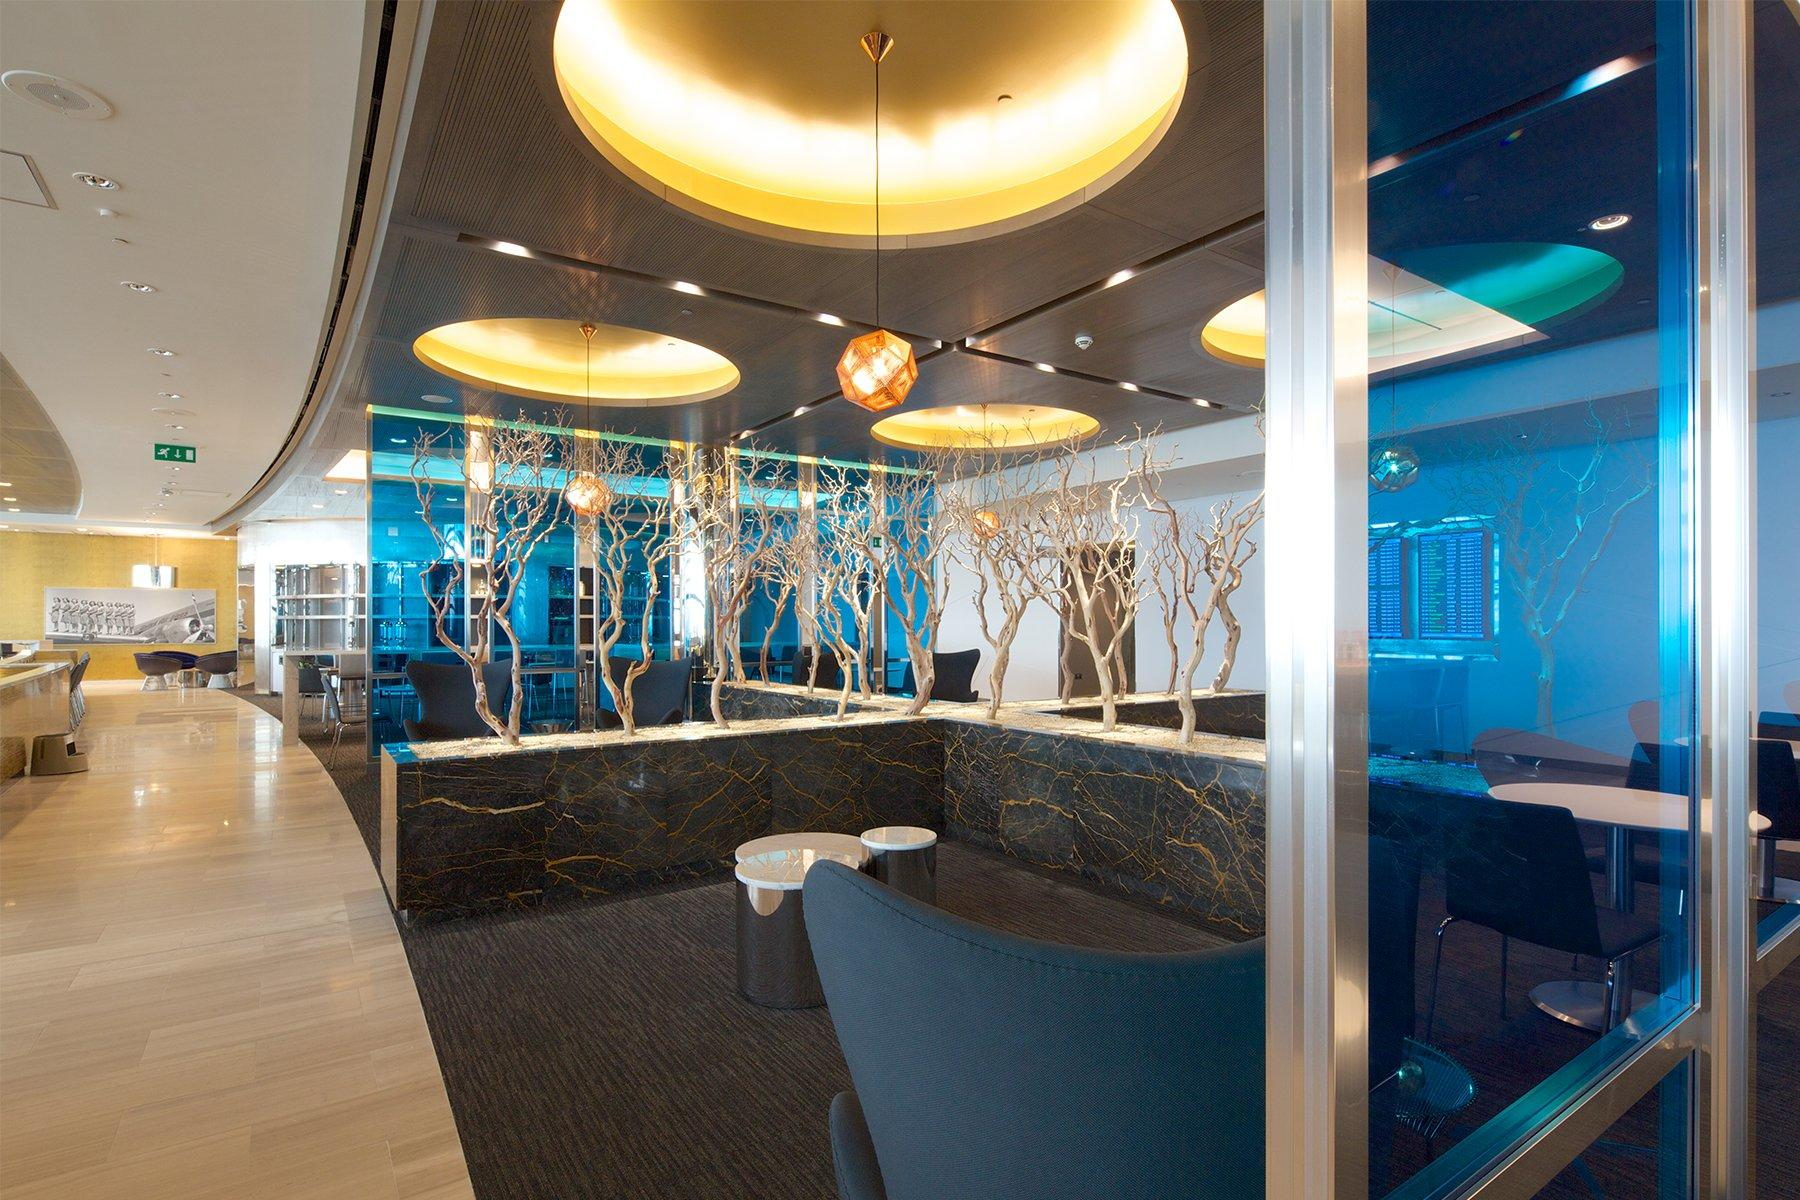 The Ultimate Guide to United Club | LoungeBuddy